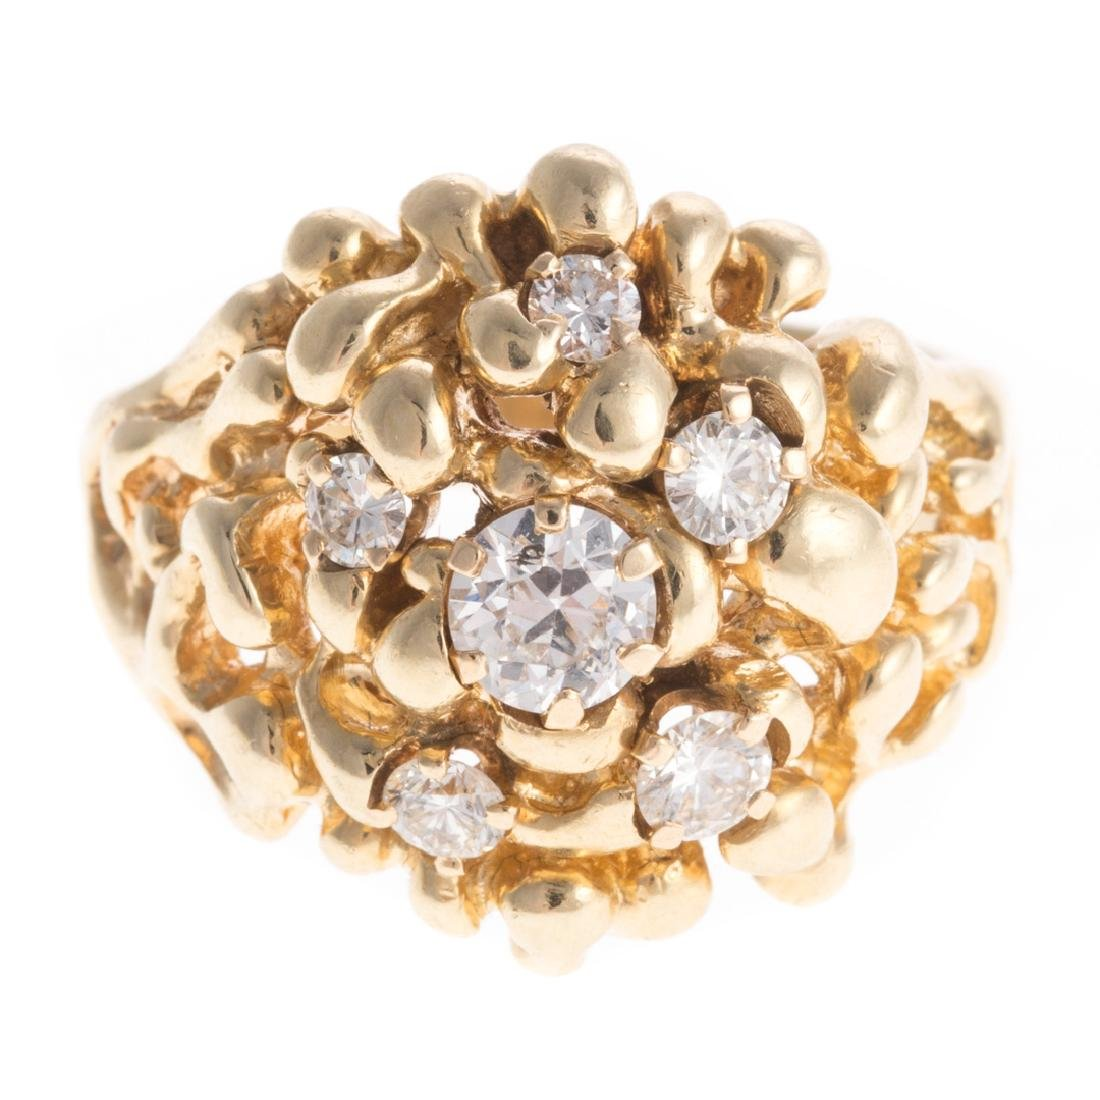 A Lady's Diamond Dome Ring in Gold